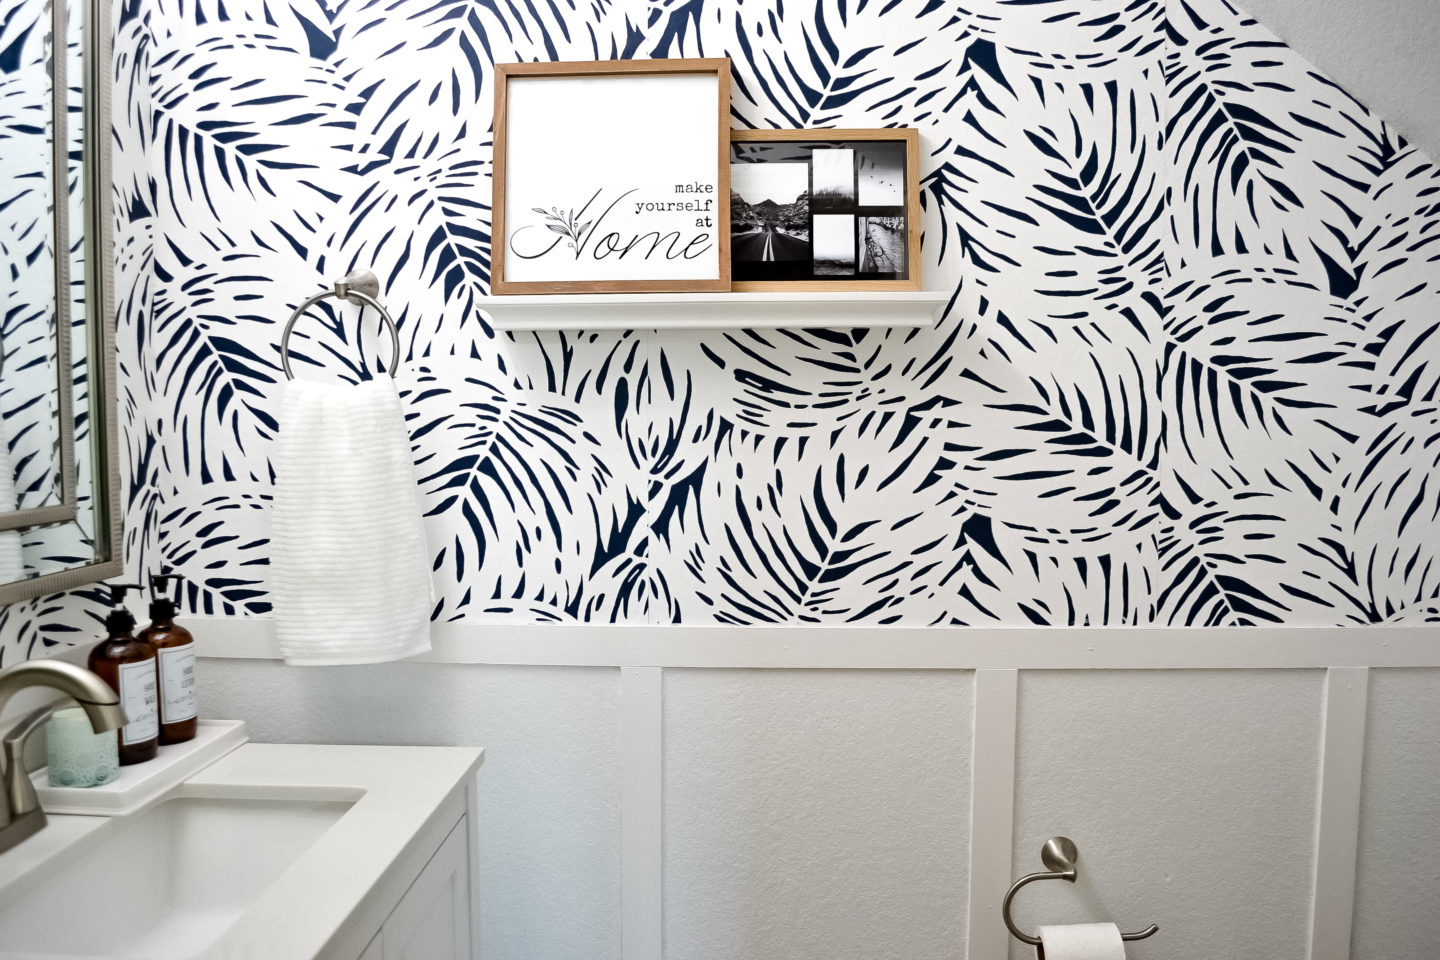 Powder room reveal one room, challenge